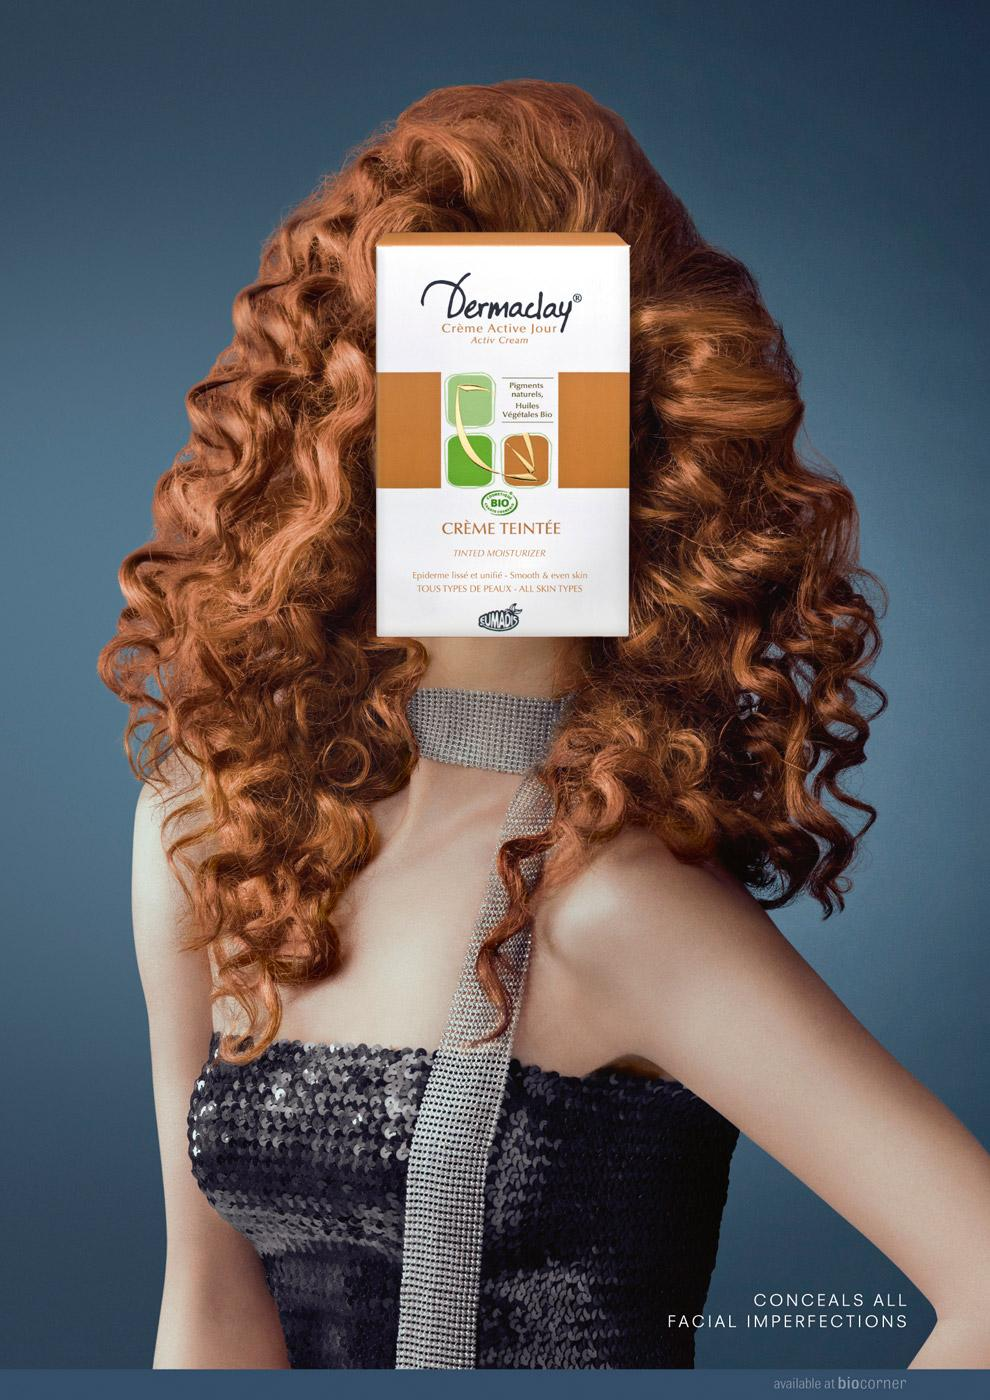 Dermaclay Print Ad -  No imperfection, 3